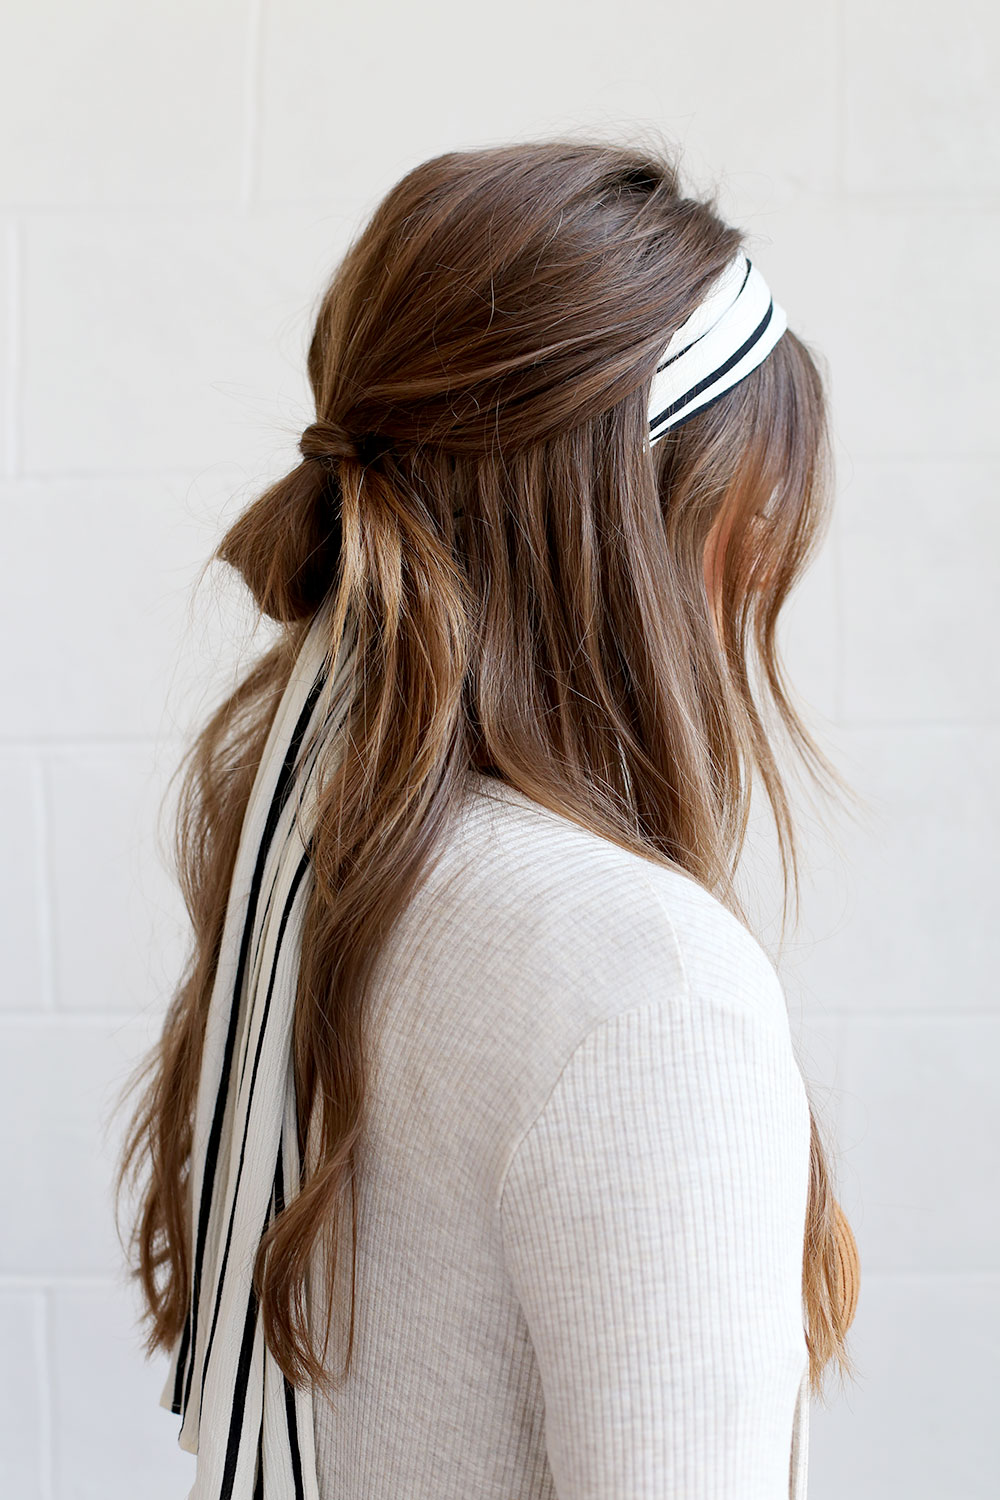 how-to-style-hair-accessories-scarf-scarves-bandana-silk-messy-halfup-tied.jpg